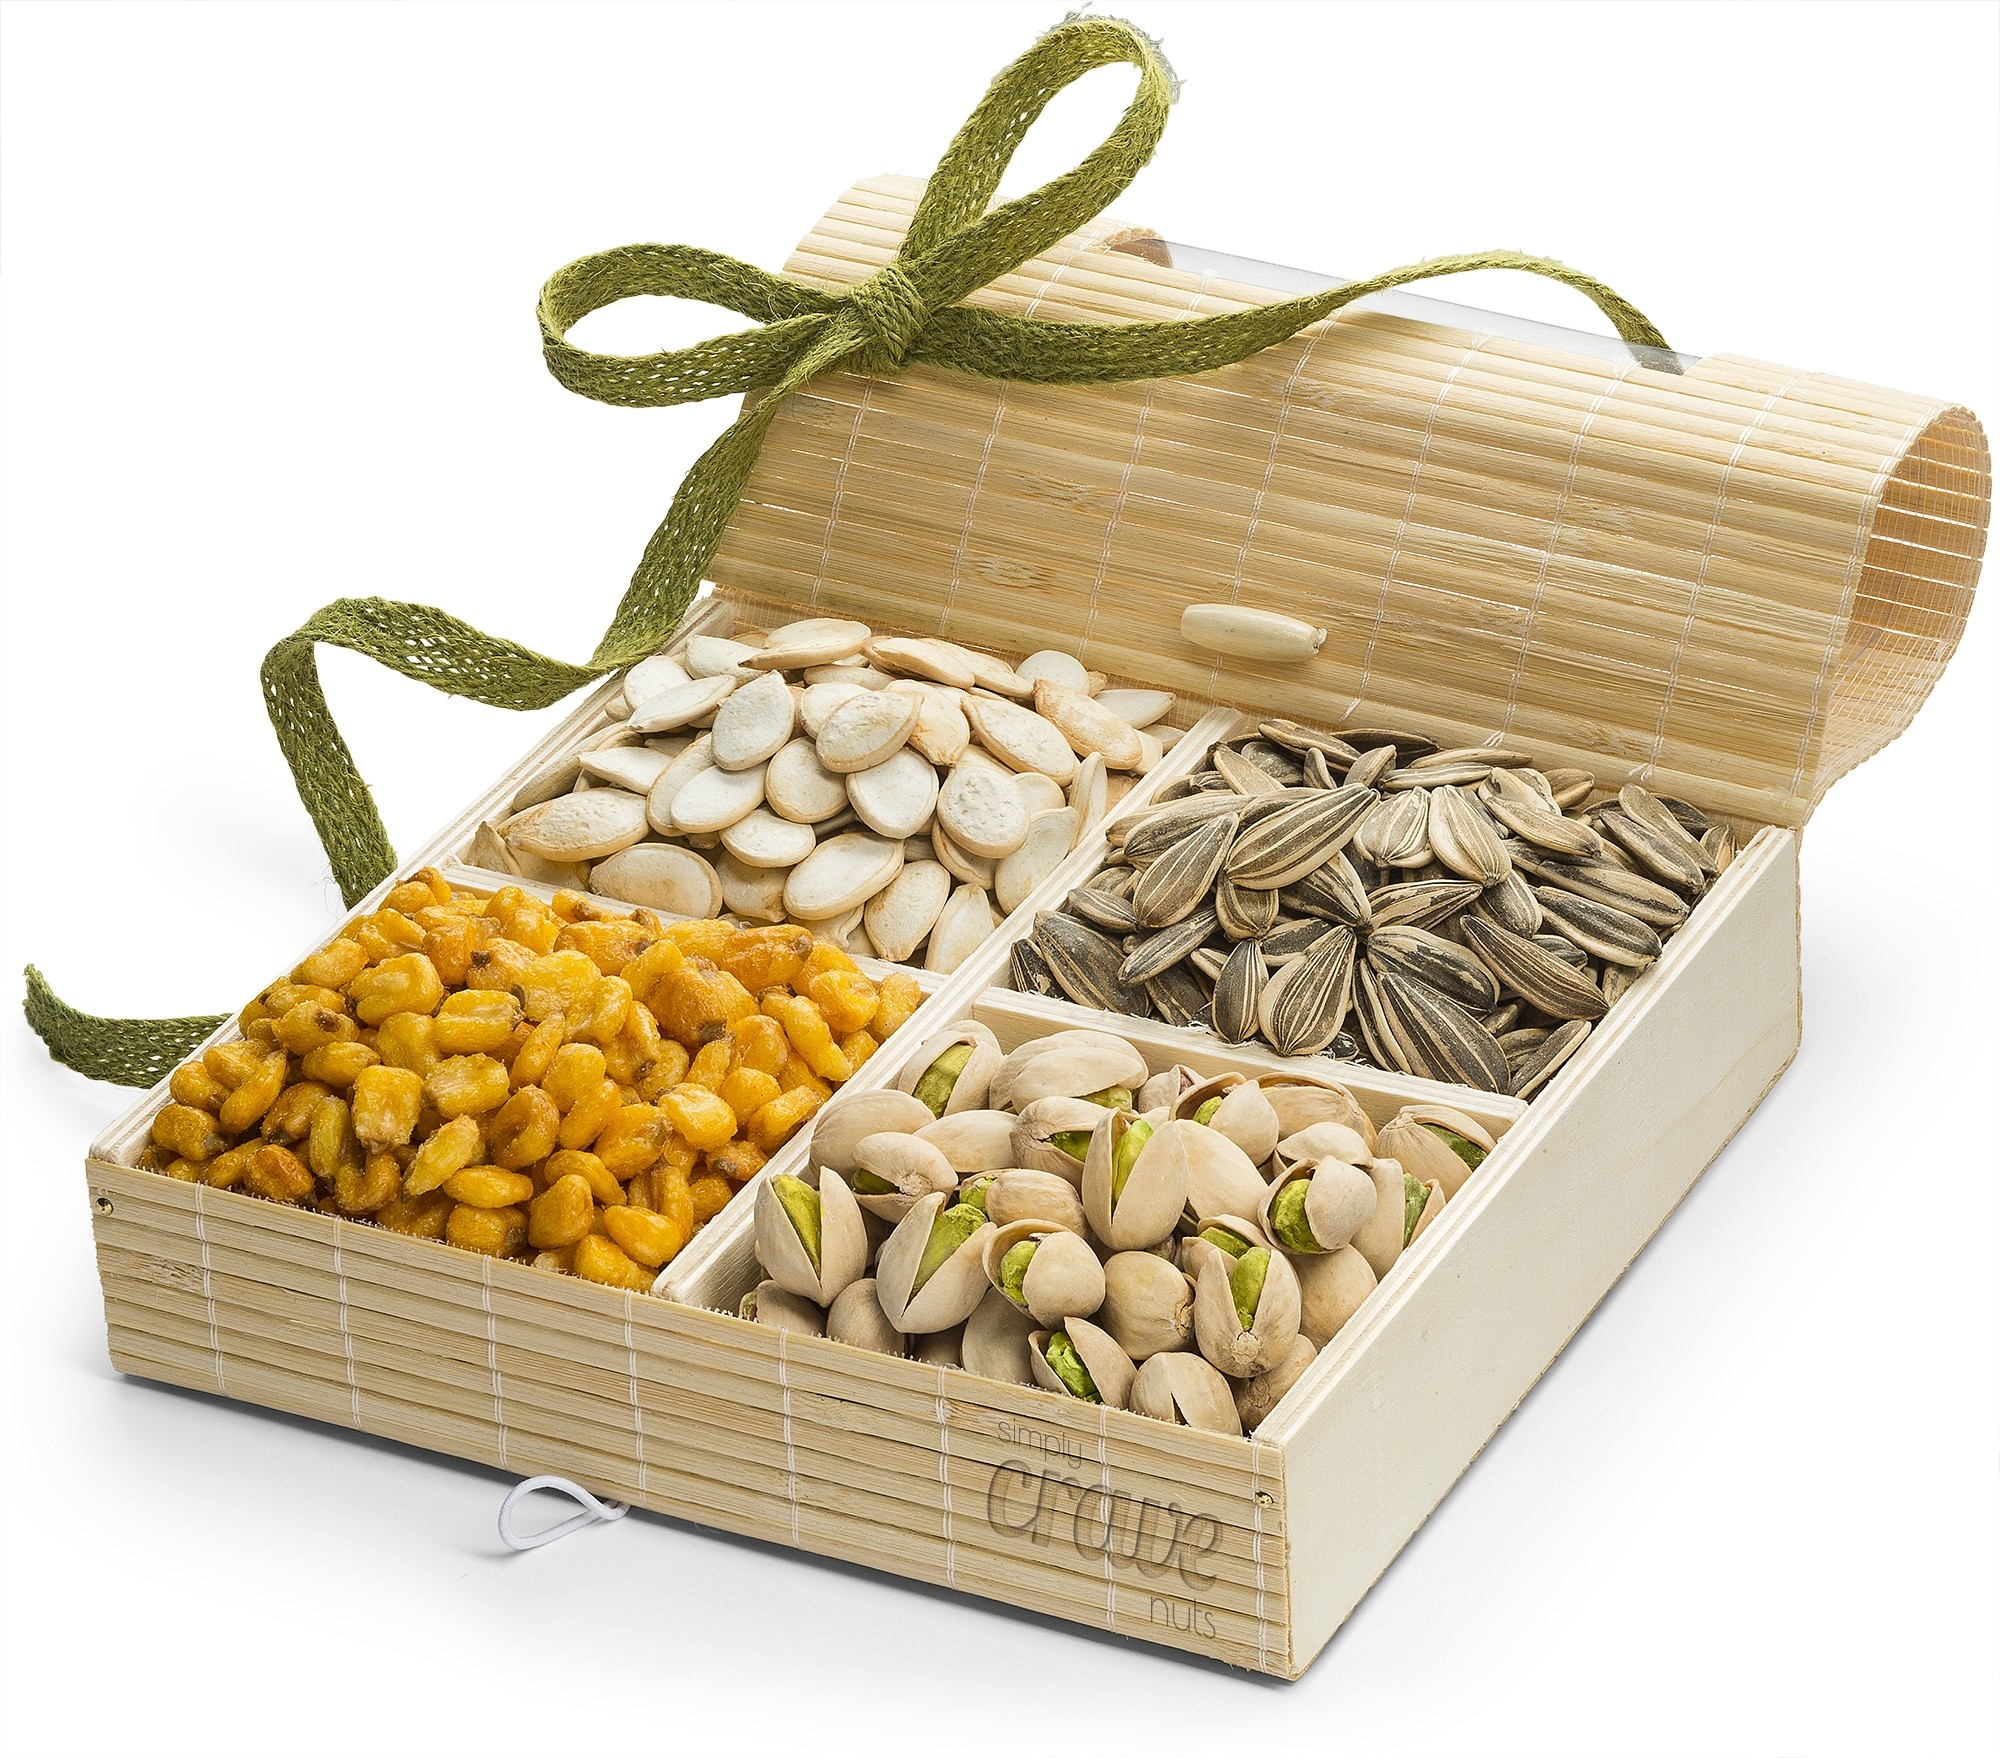 Simply Crave Nut Gift Baskets, Gourmet Food Gift, Nuts Tray Gift Assortment, Nuts & Seeds (Large)